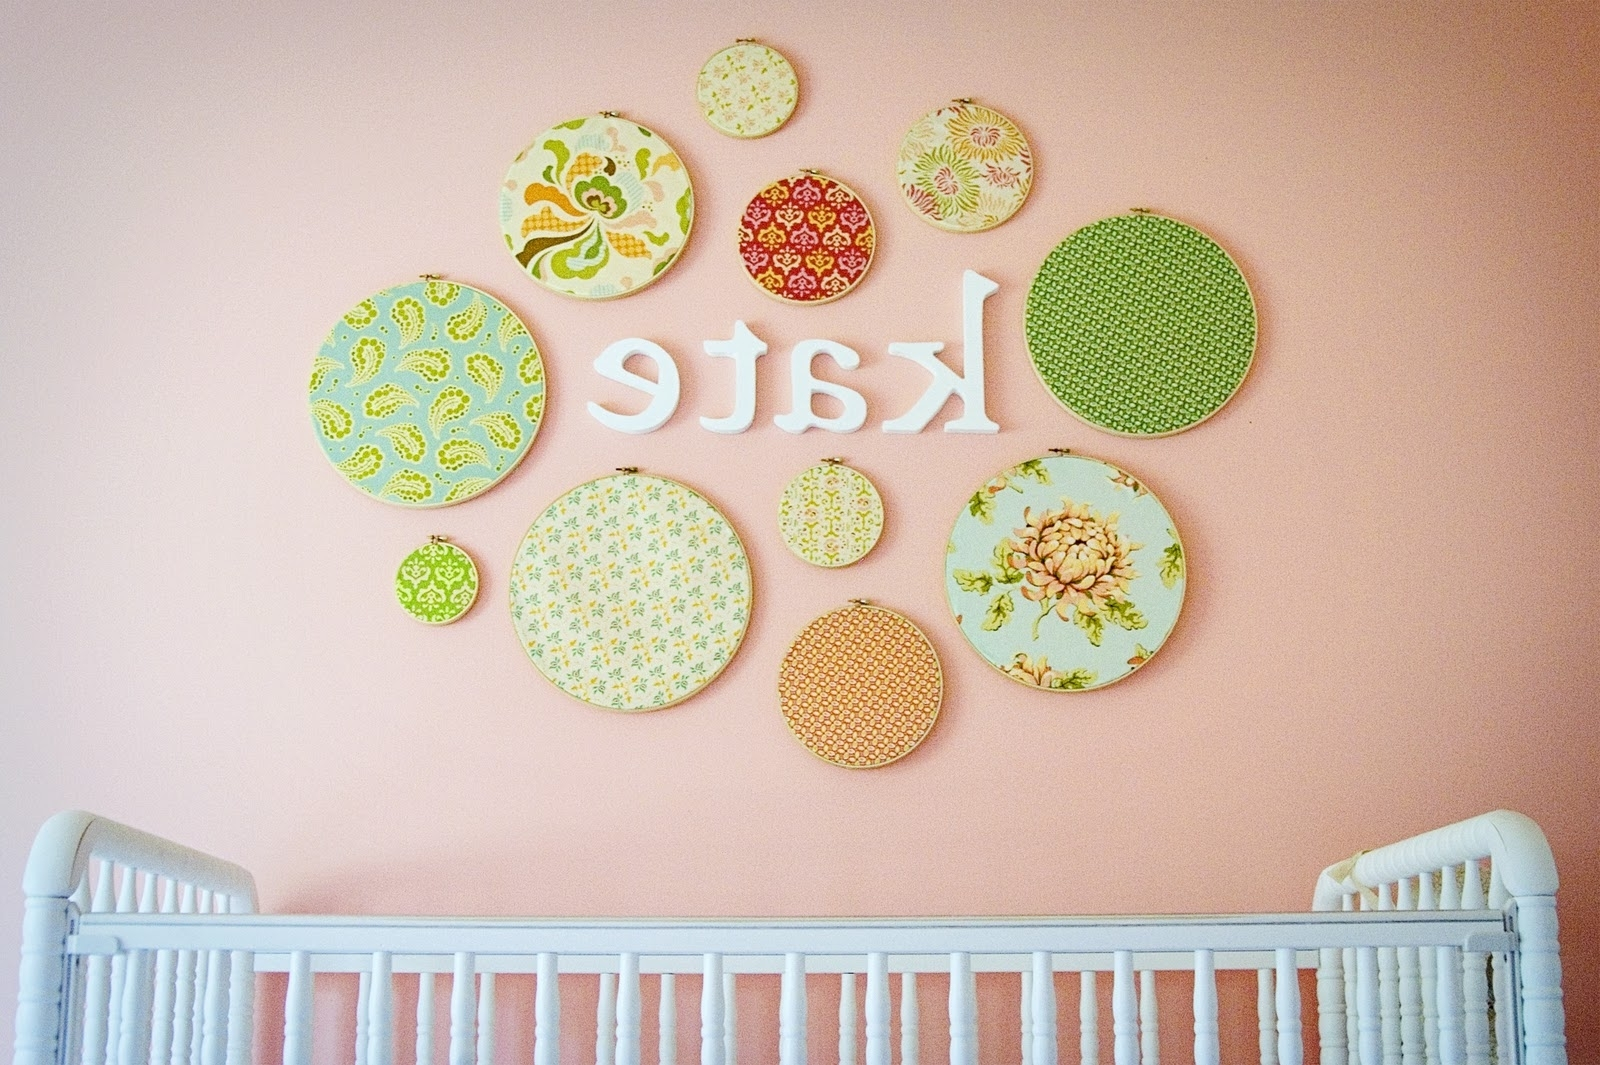 What's All The Hoopla About? – Project Nursery Inside Widely Used Fabric Name Wall Art (View 15 of 15)